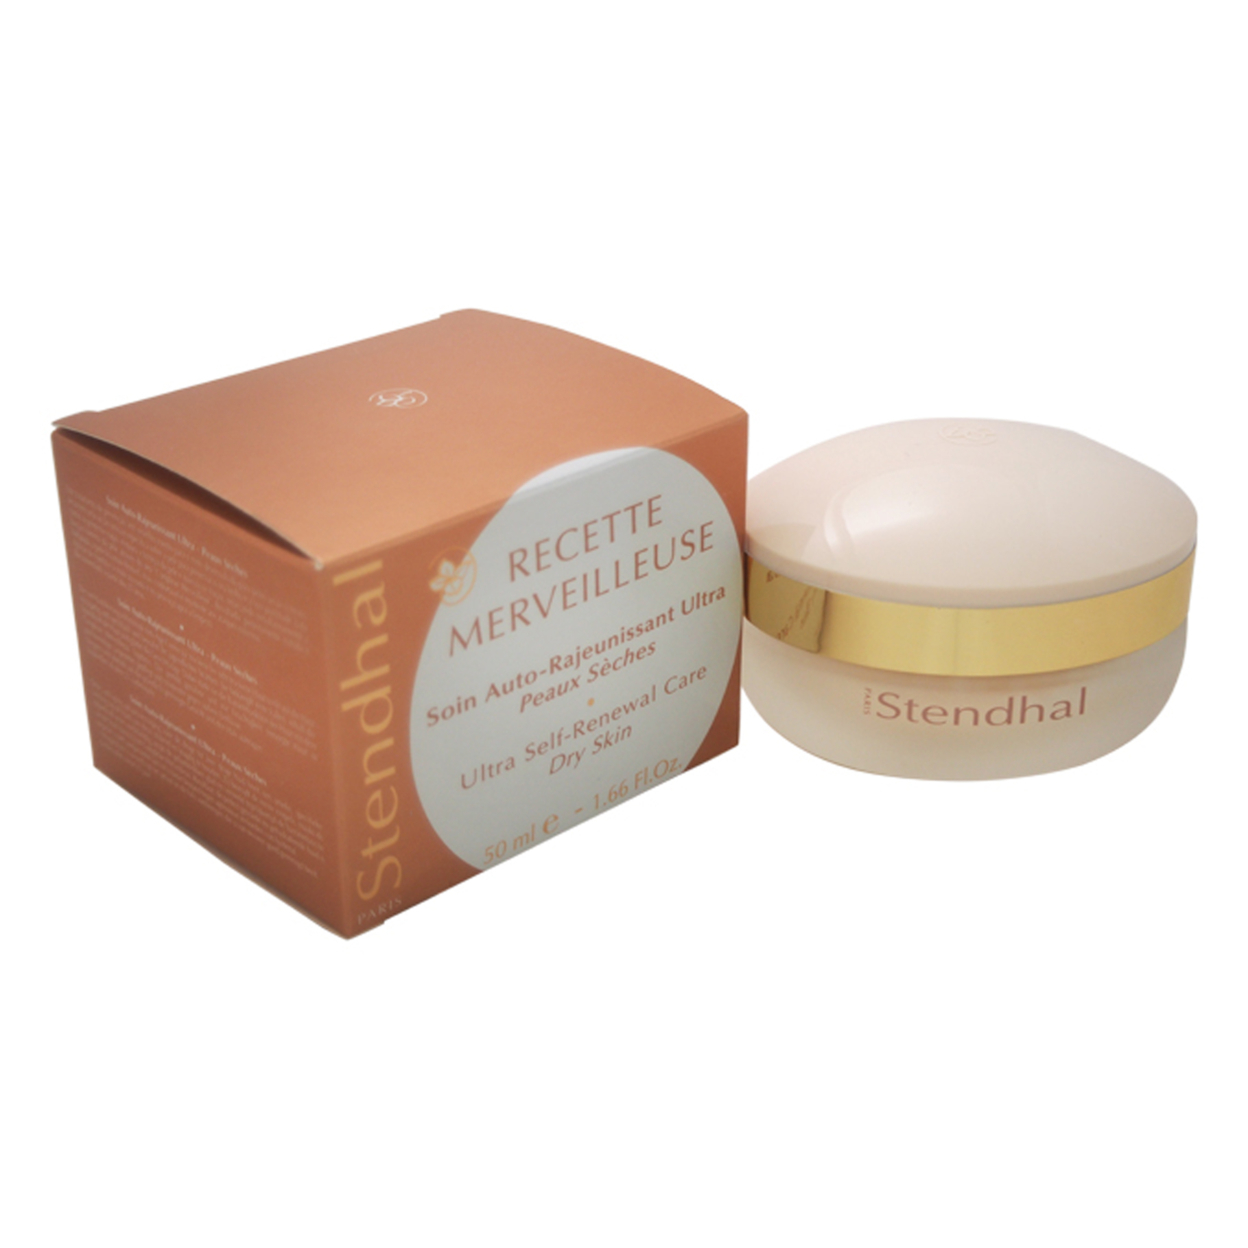 Recette Merveilleuse Ultra Self-renewal Care Dry Skin By Stendhal For Women 1.66 Oz Cream